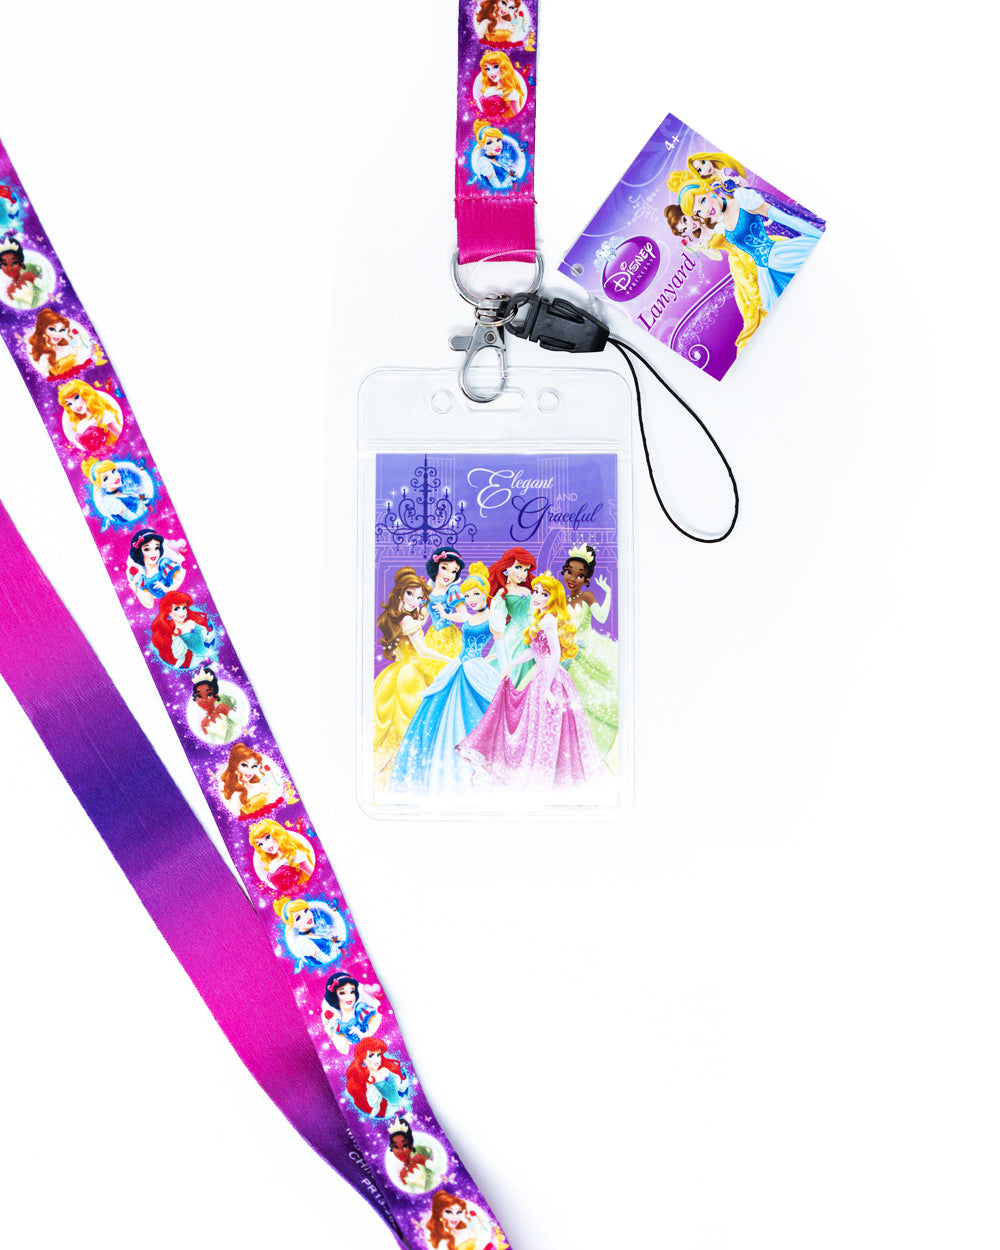 Disney Princesses Elegant and Graceful Break Away Lanyard - The Pink a la Mode - Monogram - The Pink a la Mode